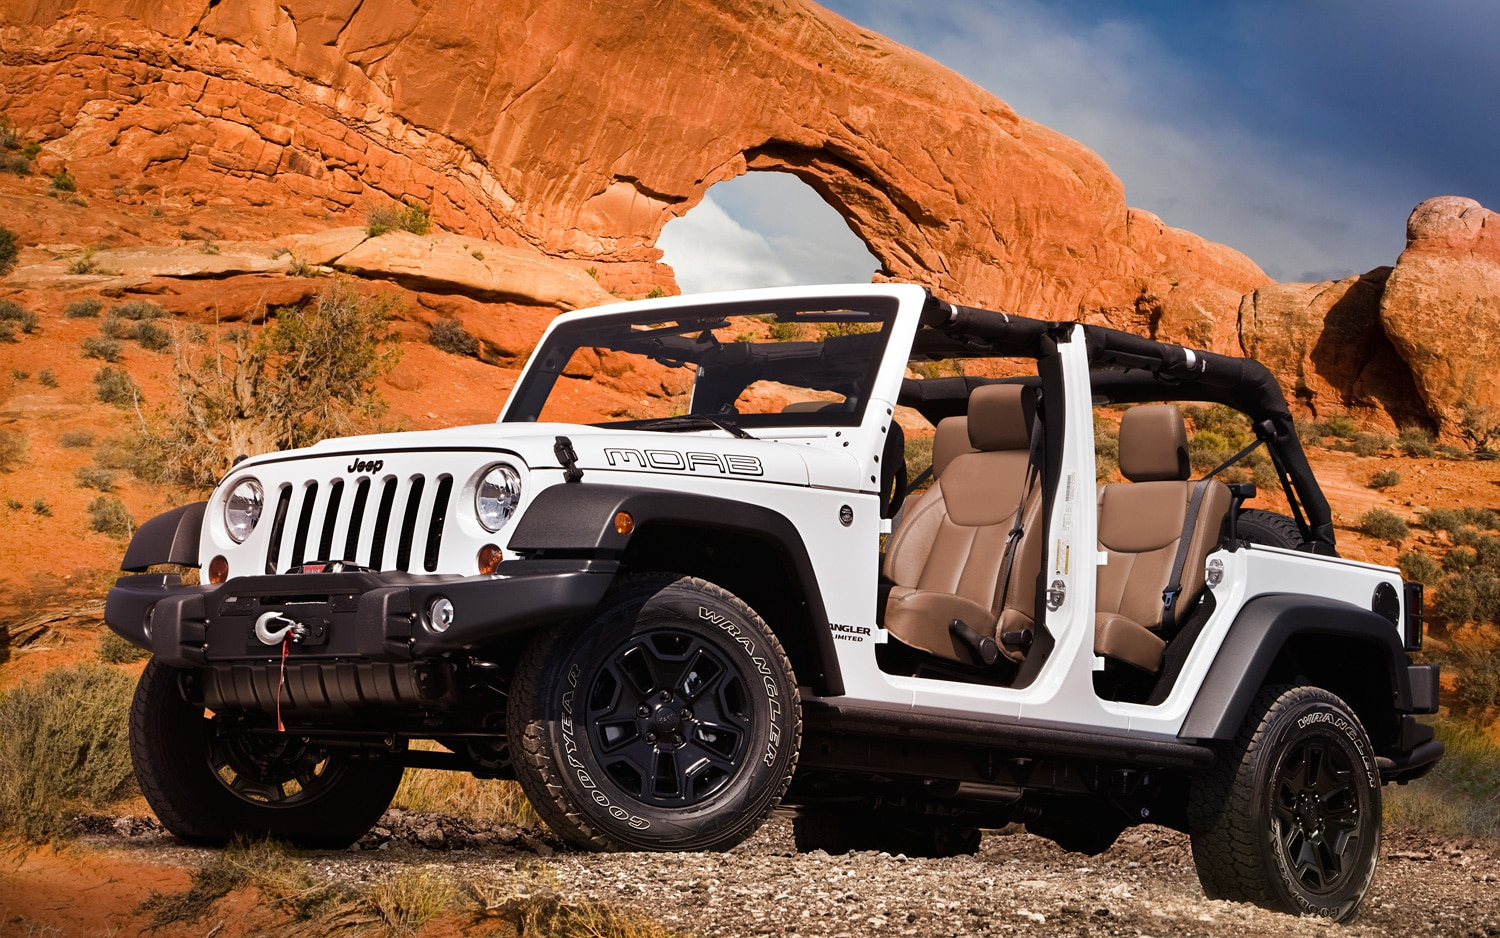 2013 Jeep Wrangler Moab Front Three Quarter Doors Off 11